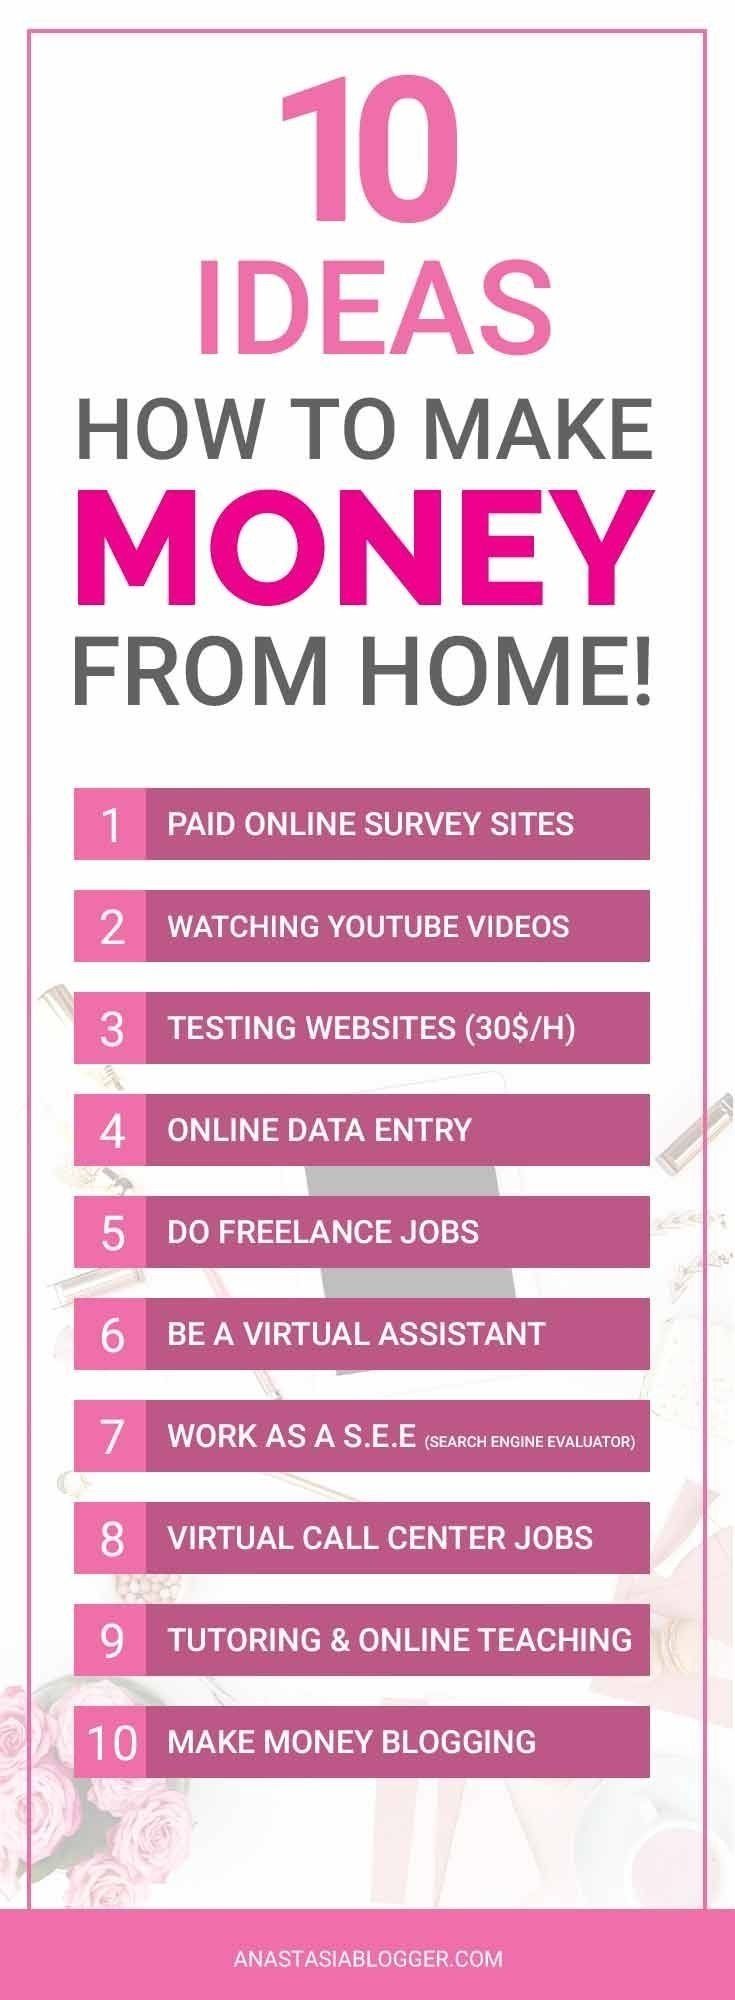 10 Perfect Ideas To Make Money Fast 10 ideas how to make money from home start earning today 1 2020